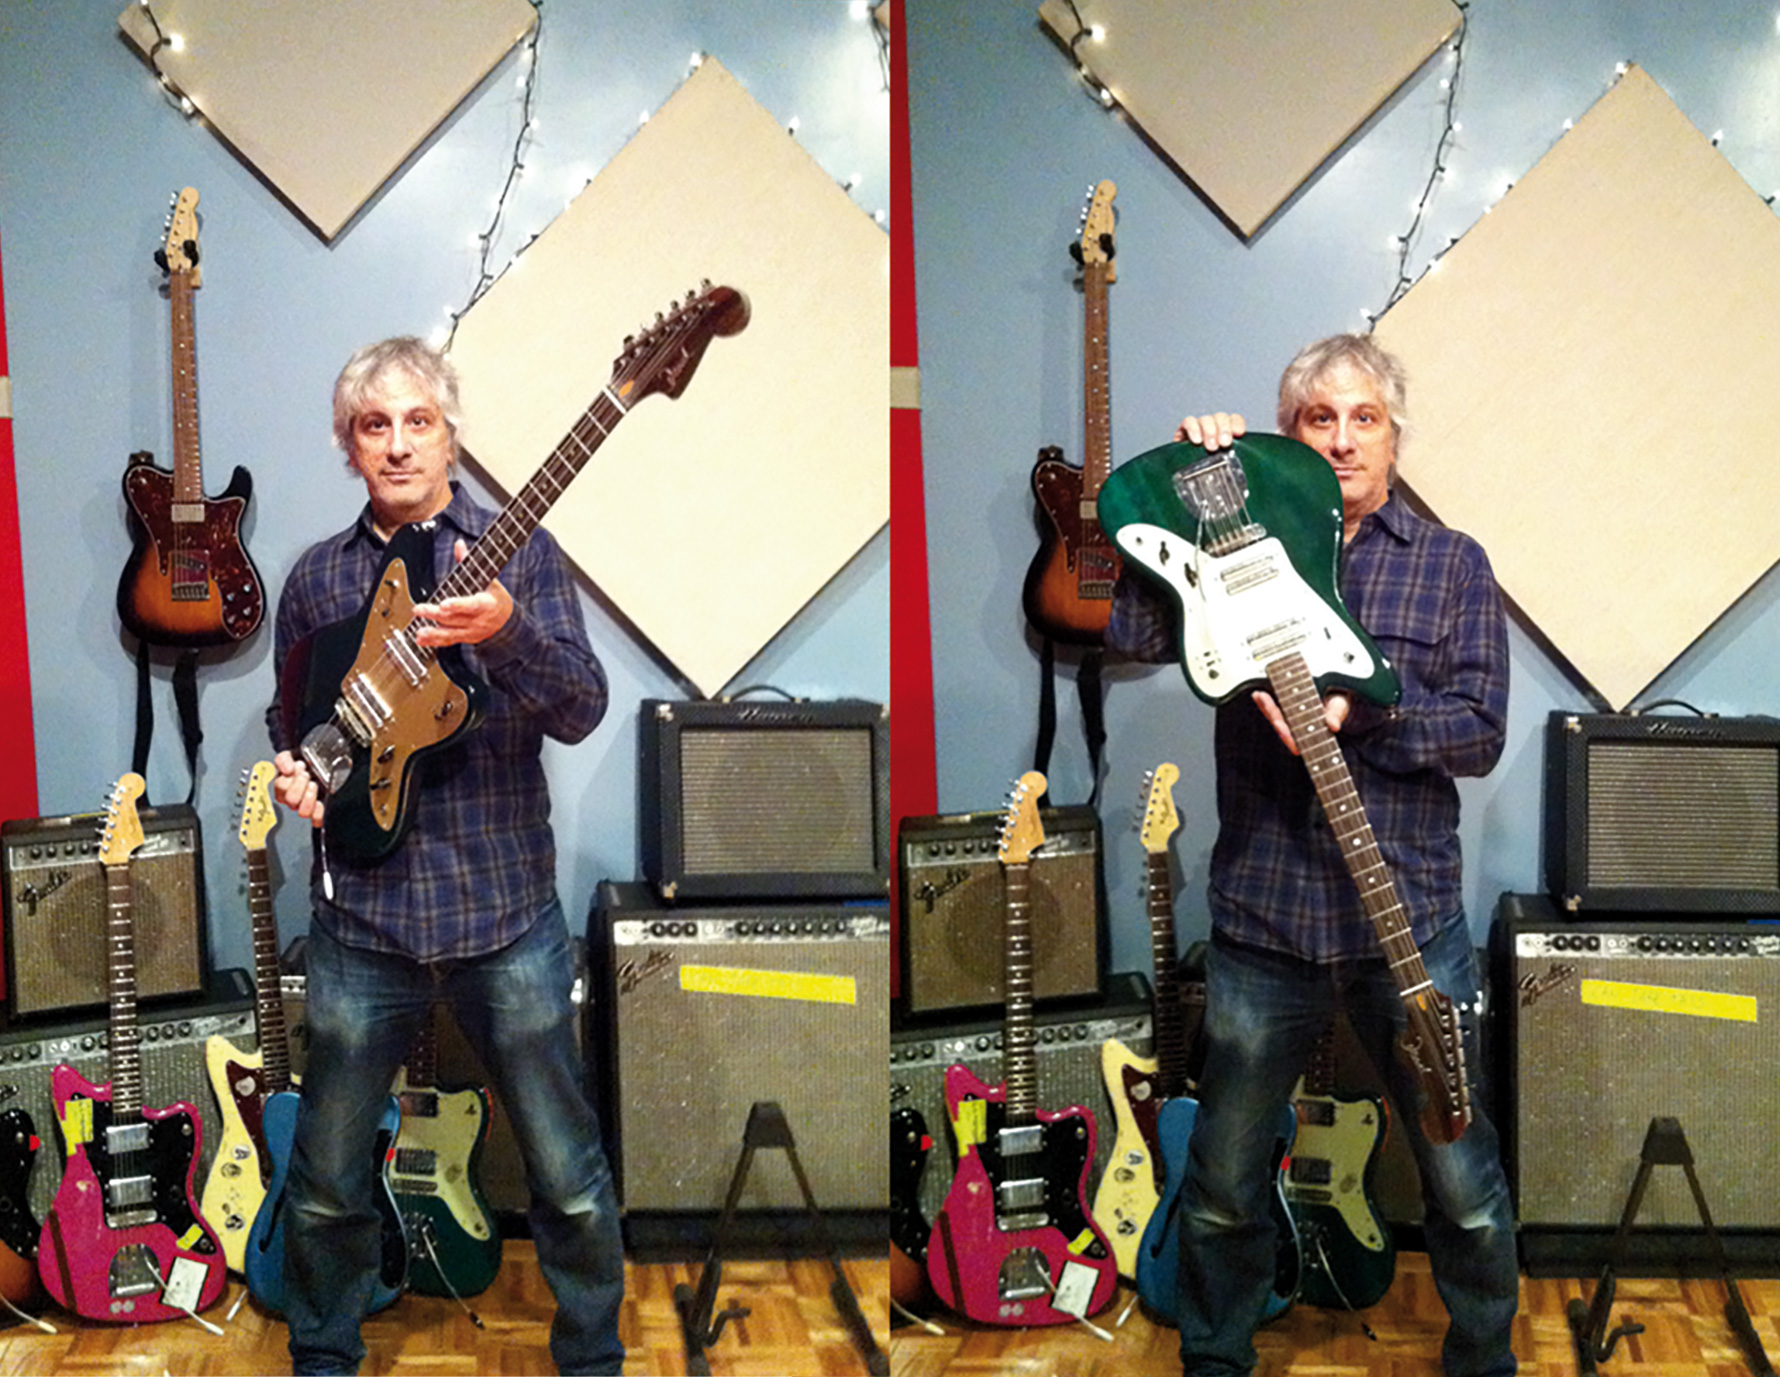 Deimel 12-String / Lee Ranaldo